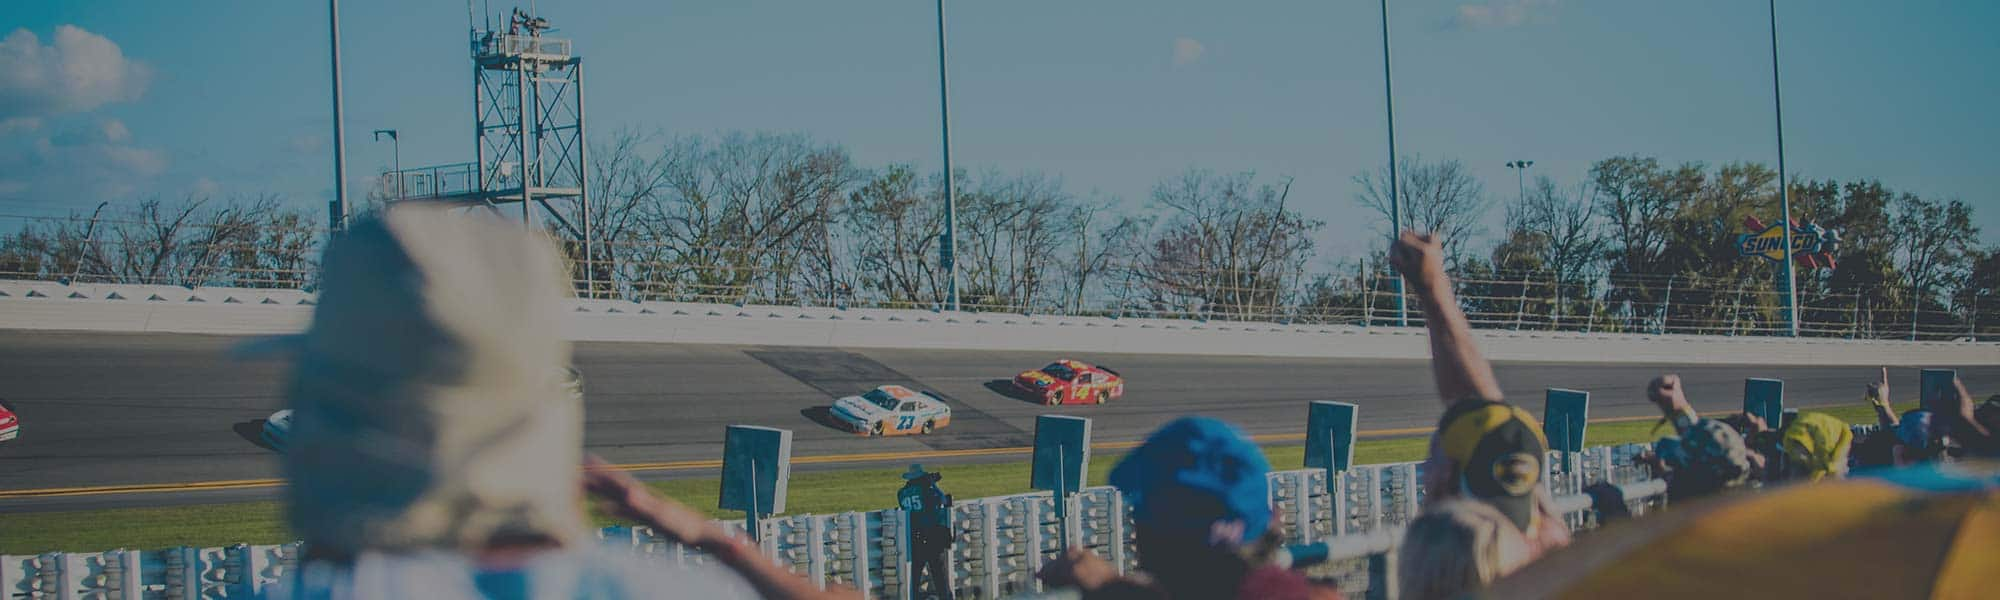 Flight Planning Services for the 2020 Daytona 500